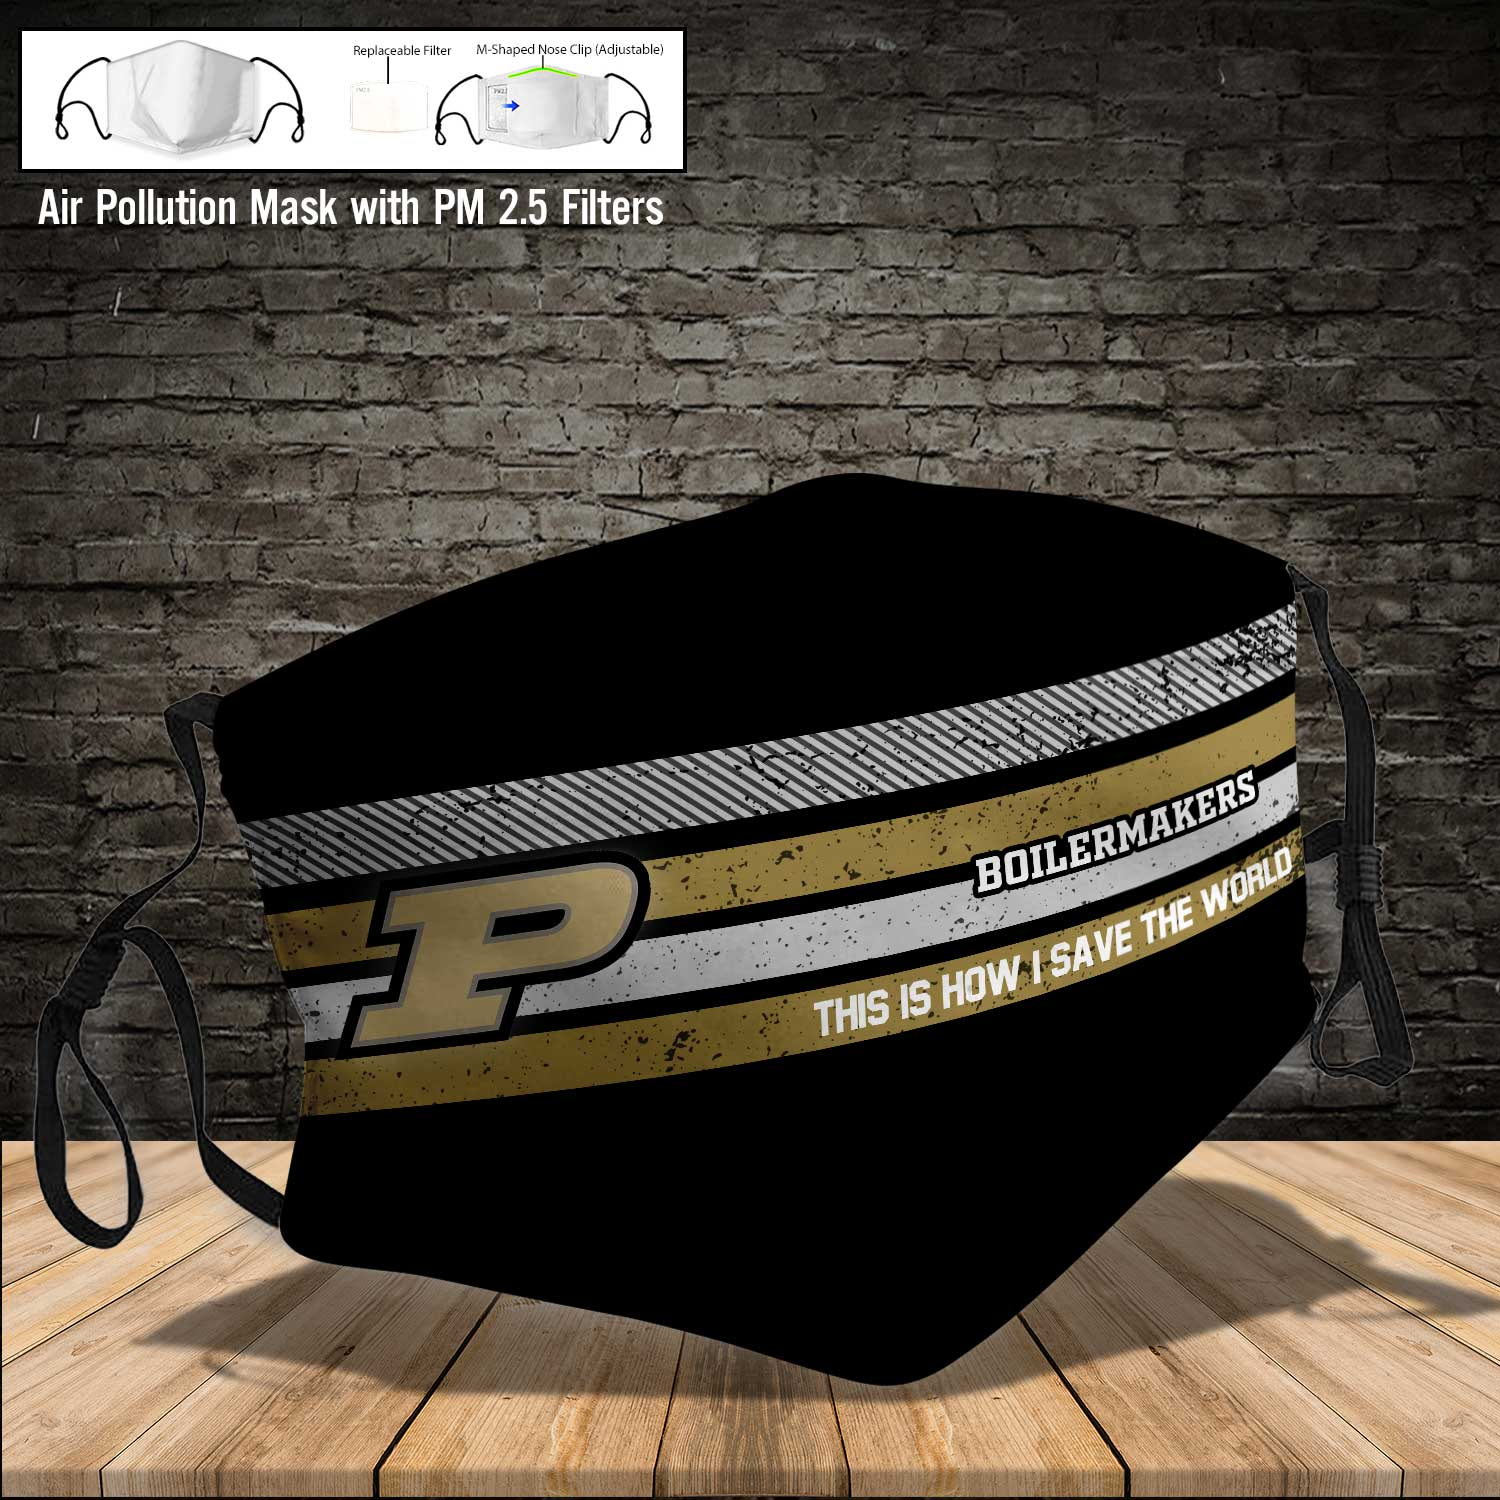 Purdue boilermakers this is how i save the world full printing face mask 3